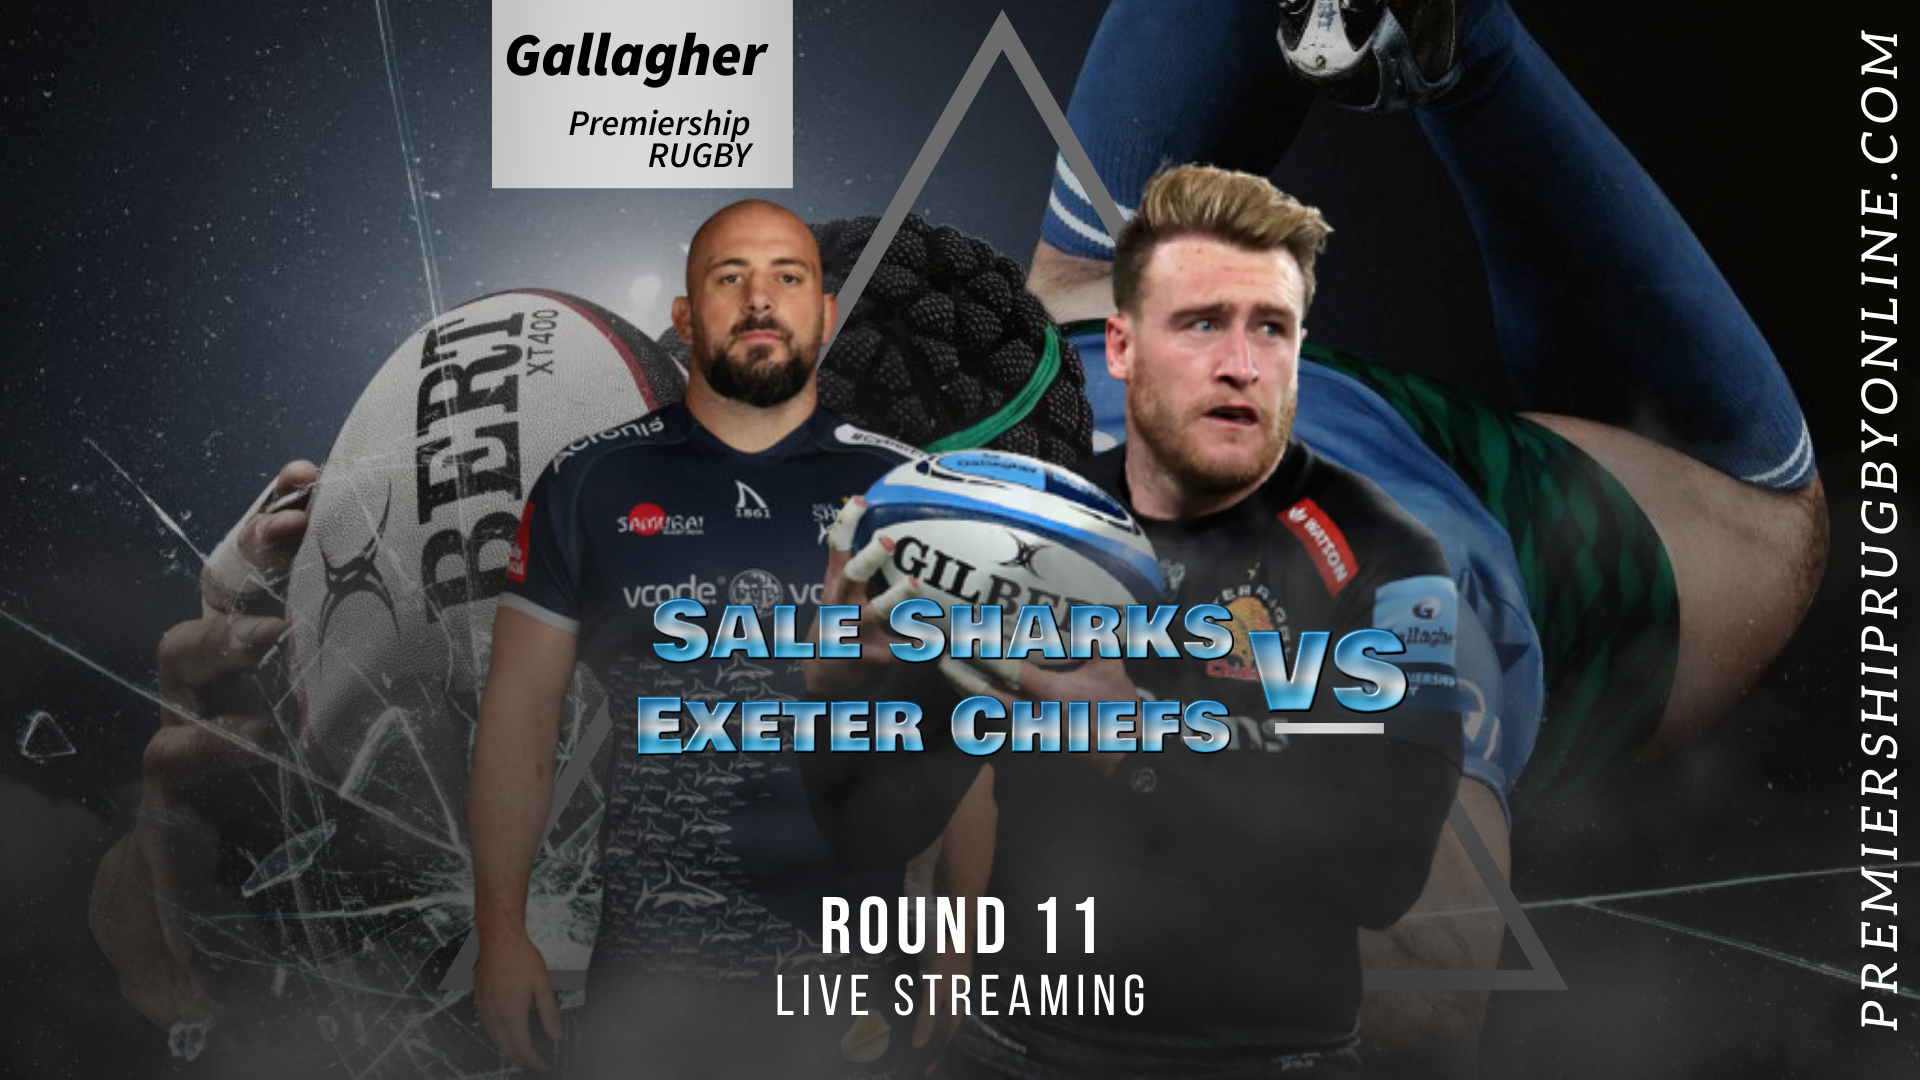 Sale Sharks Vs Exeter Chiefs Live Stream 2020-21 | Premiership Rugby Round 11 slider